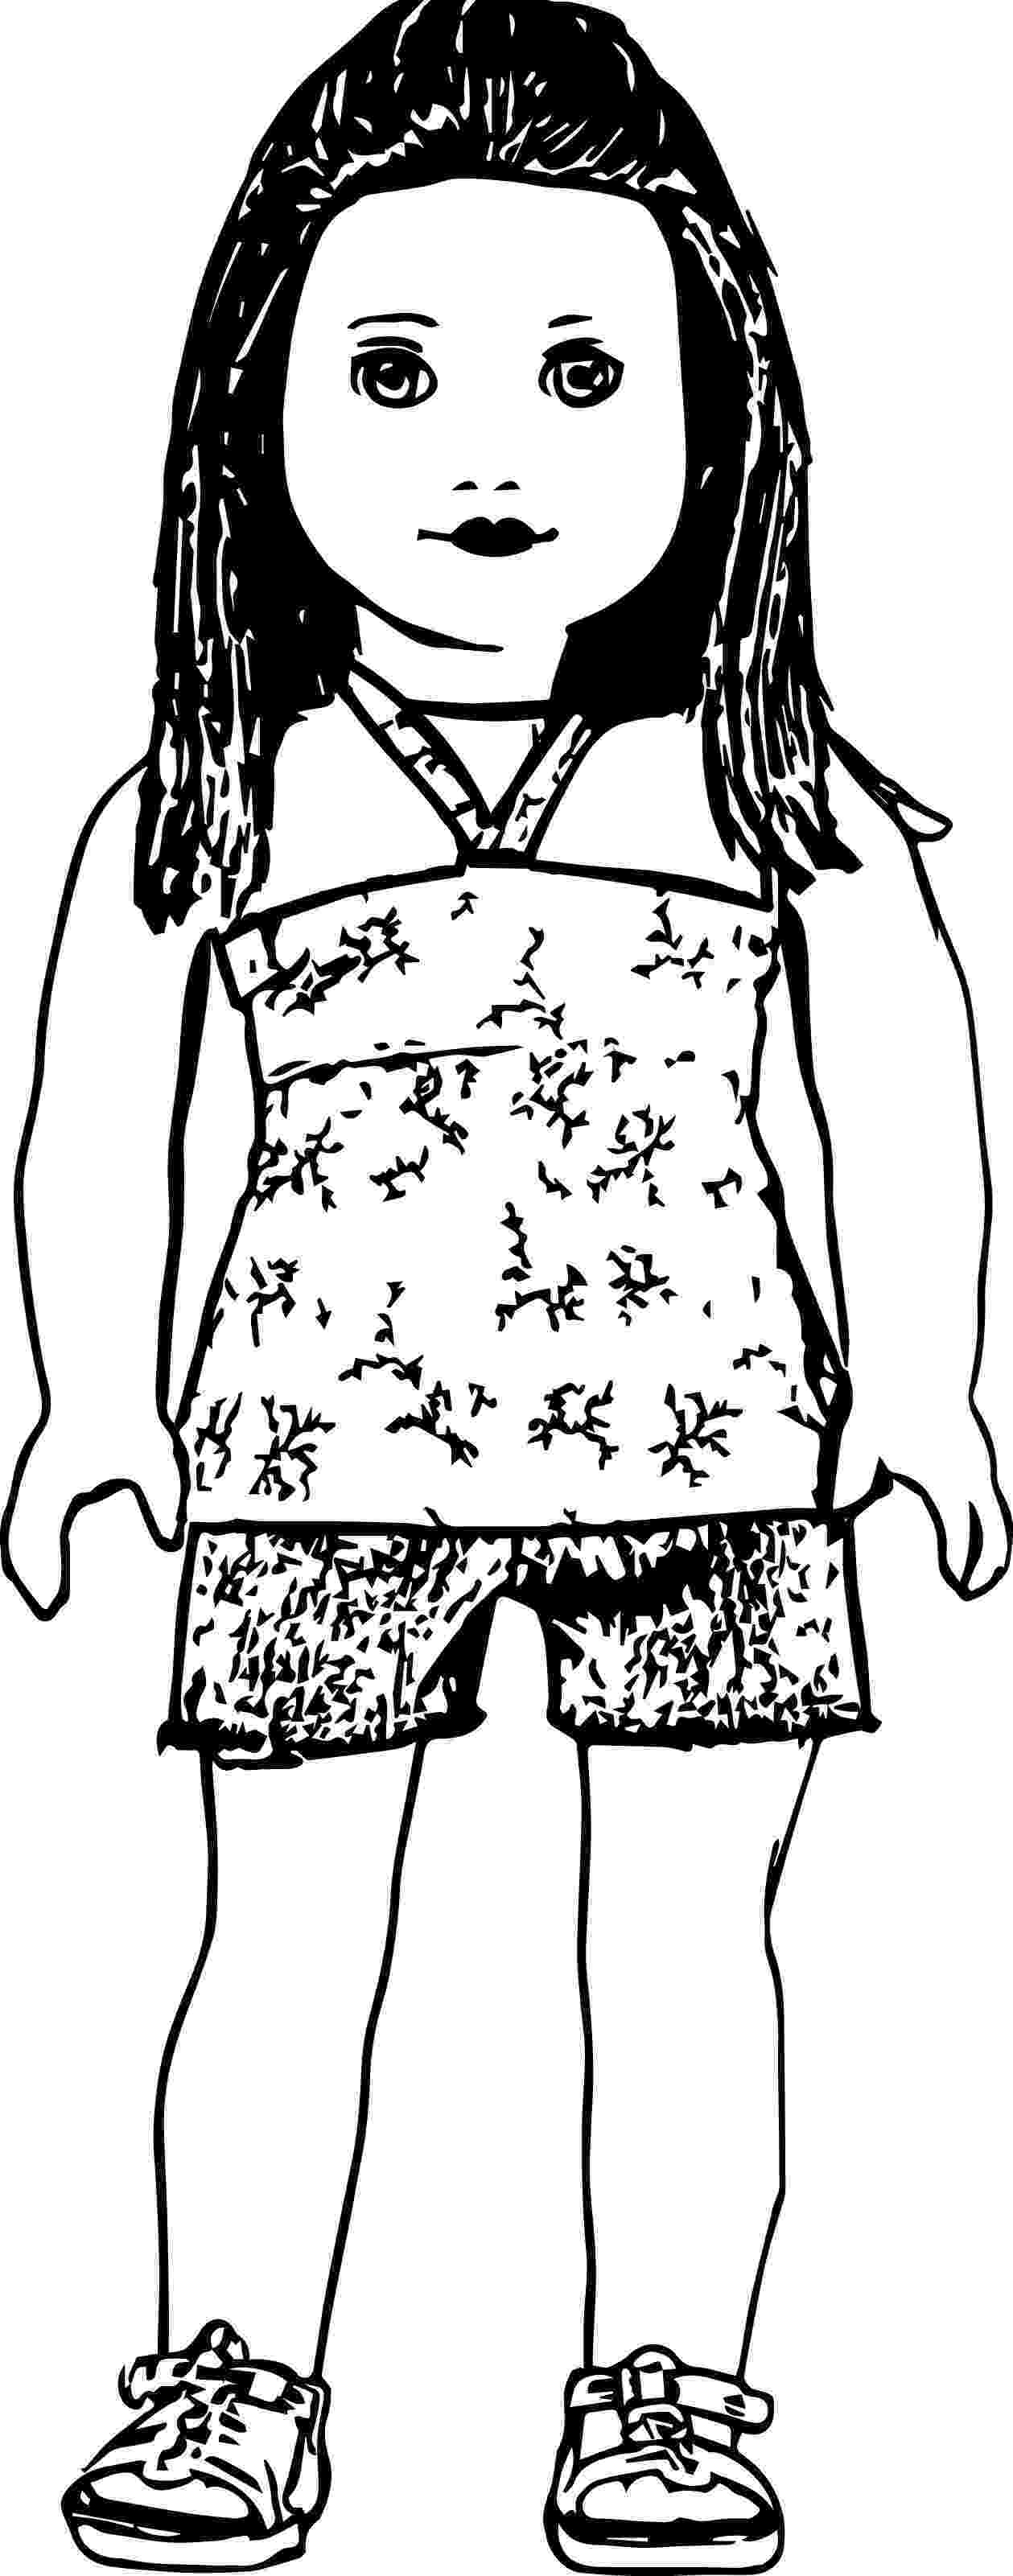 ag coloring pages ag willow printable american girl coloring pages coloring ag pages